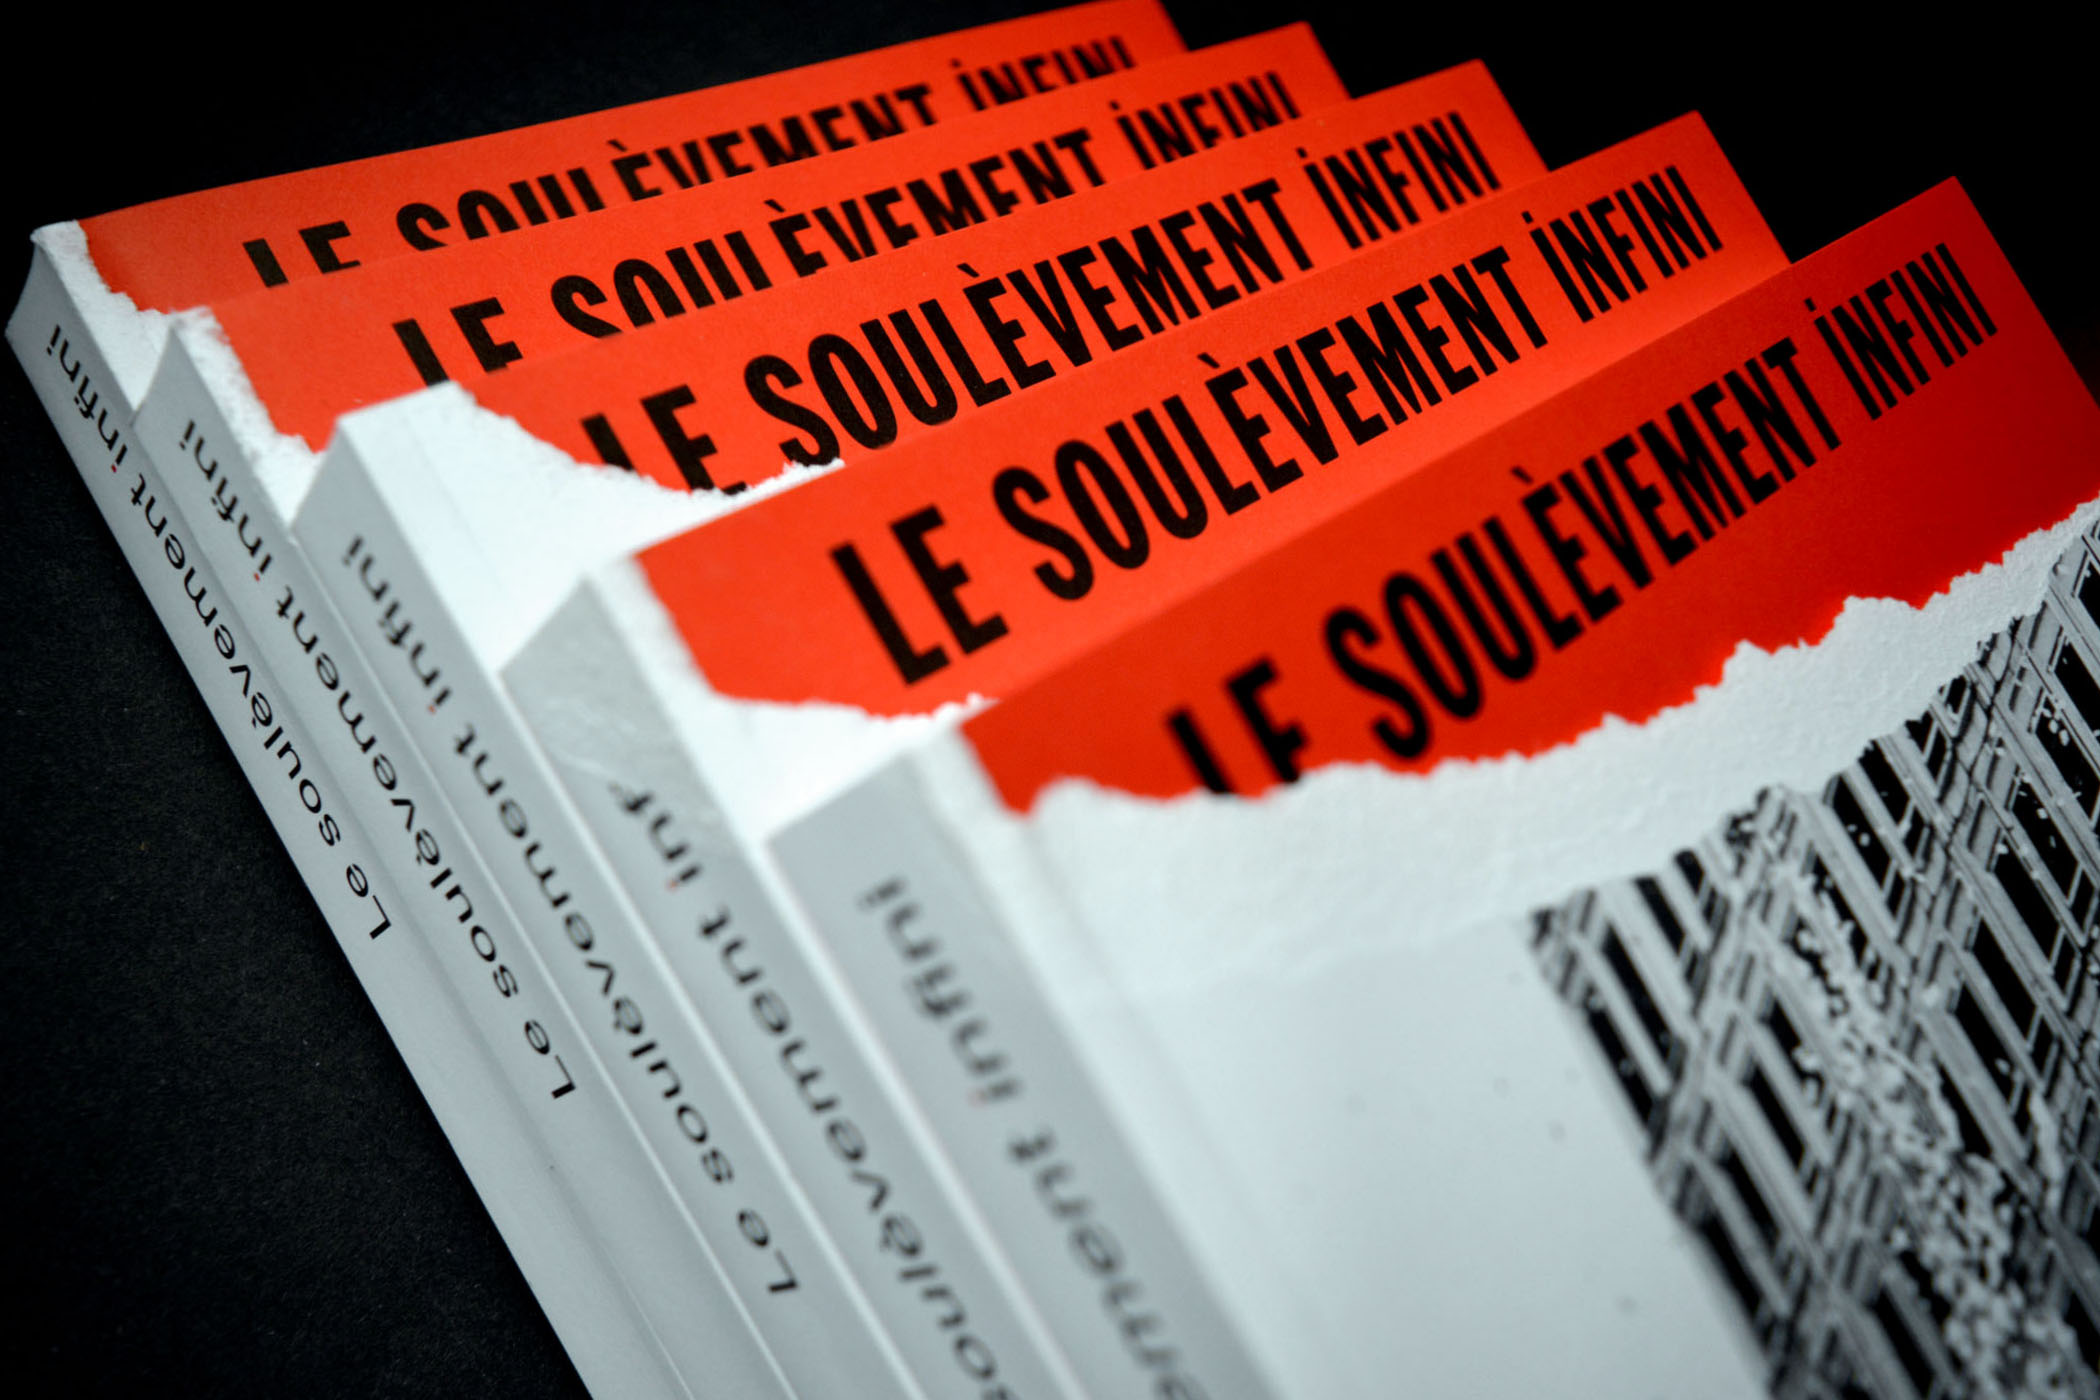 Le soulèvement infini — Catalogue